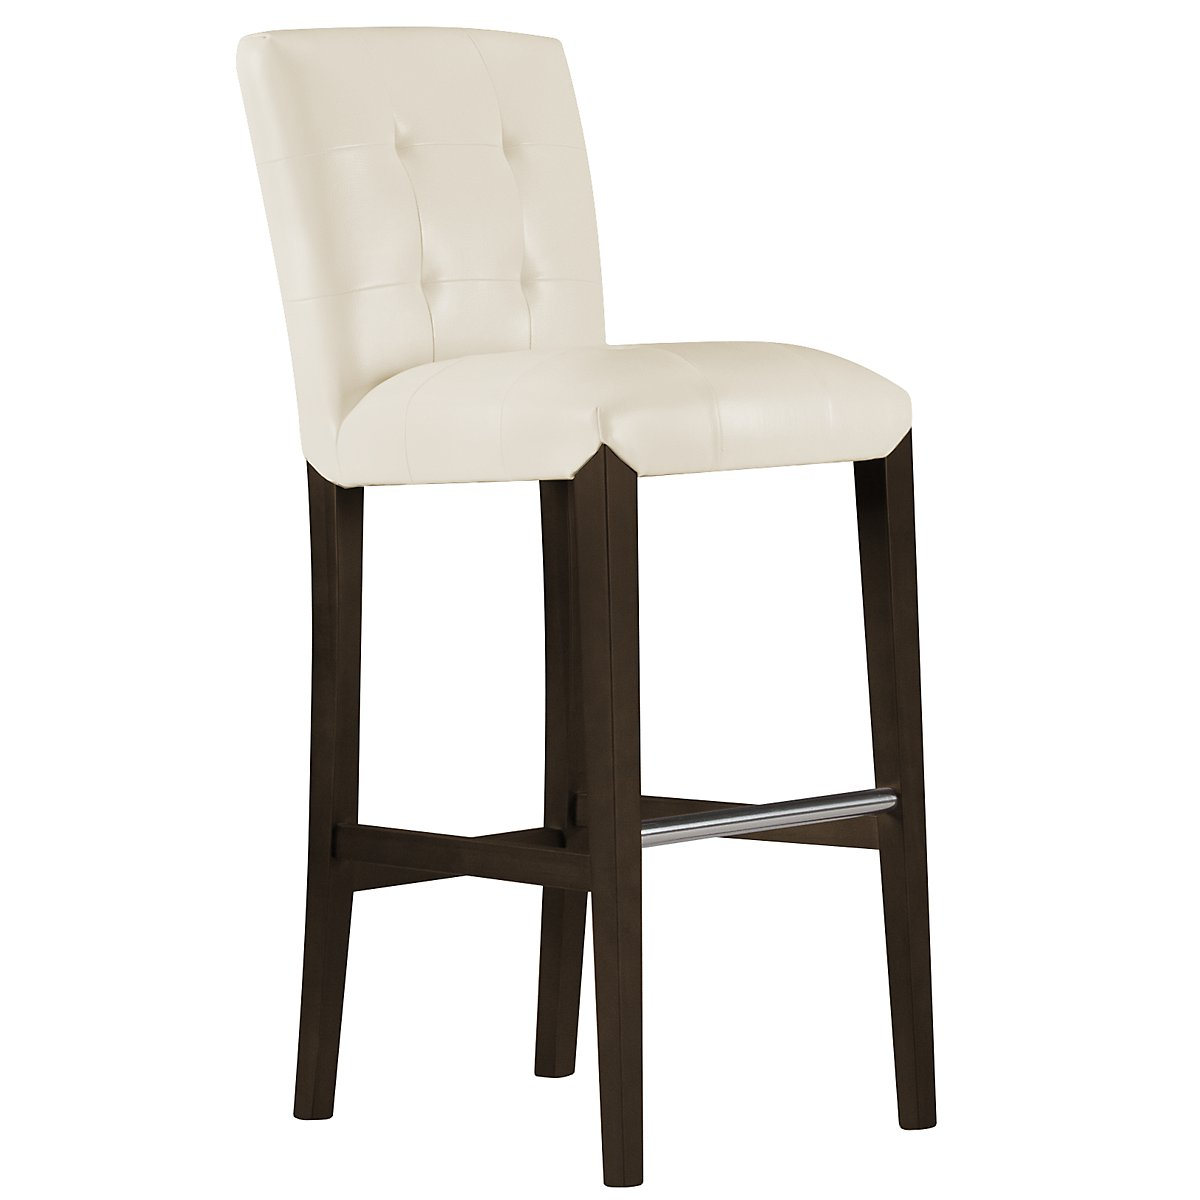 "Trisha2 Light Beige Bonded Leather 30"" Upholstered Barstool"